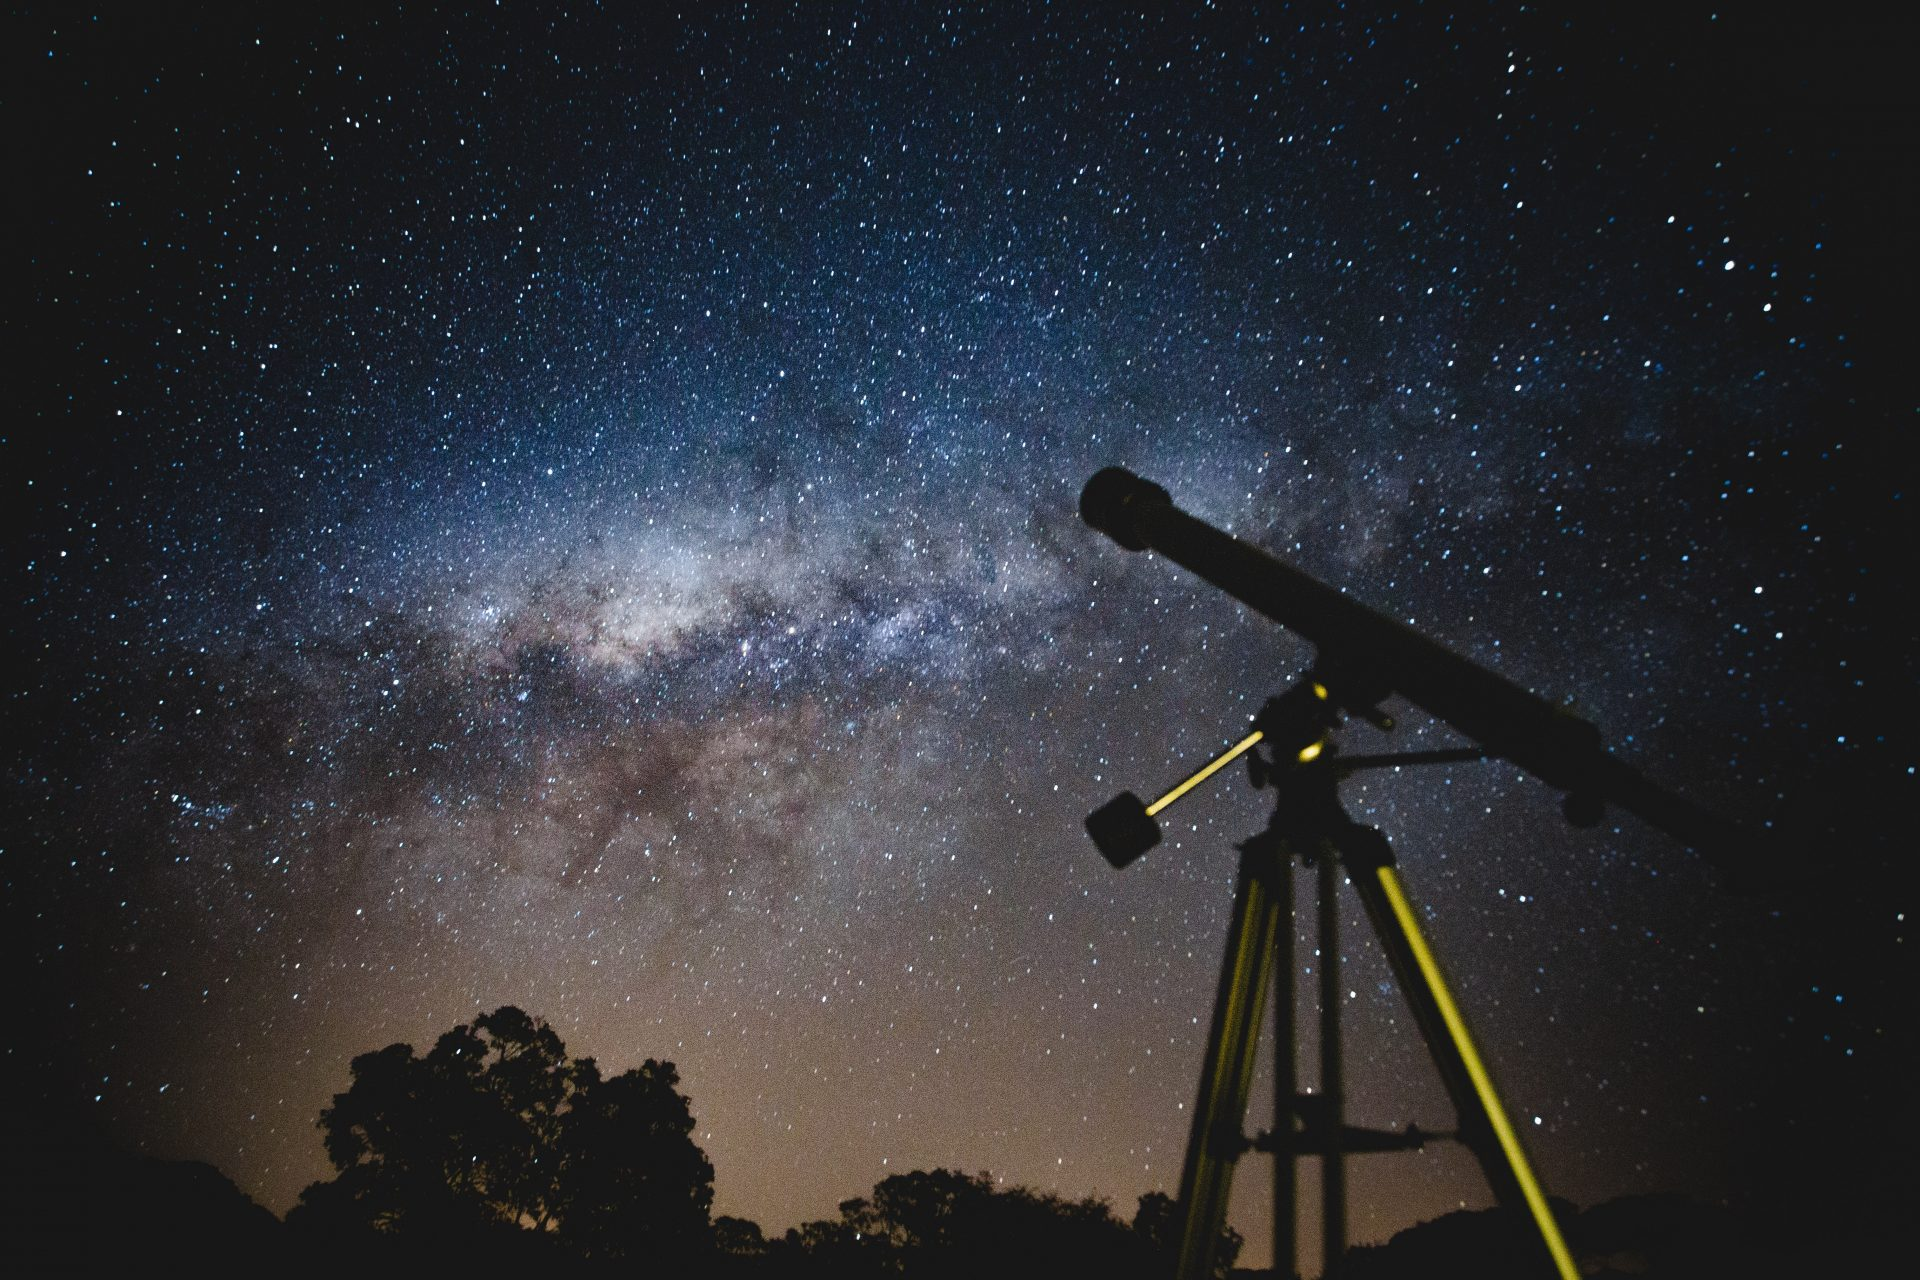 telescope with the milky way